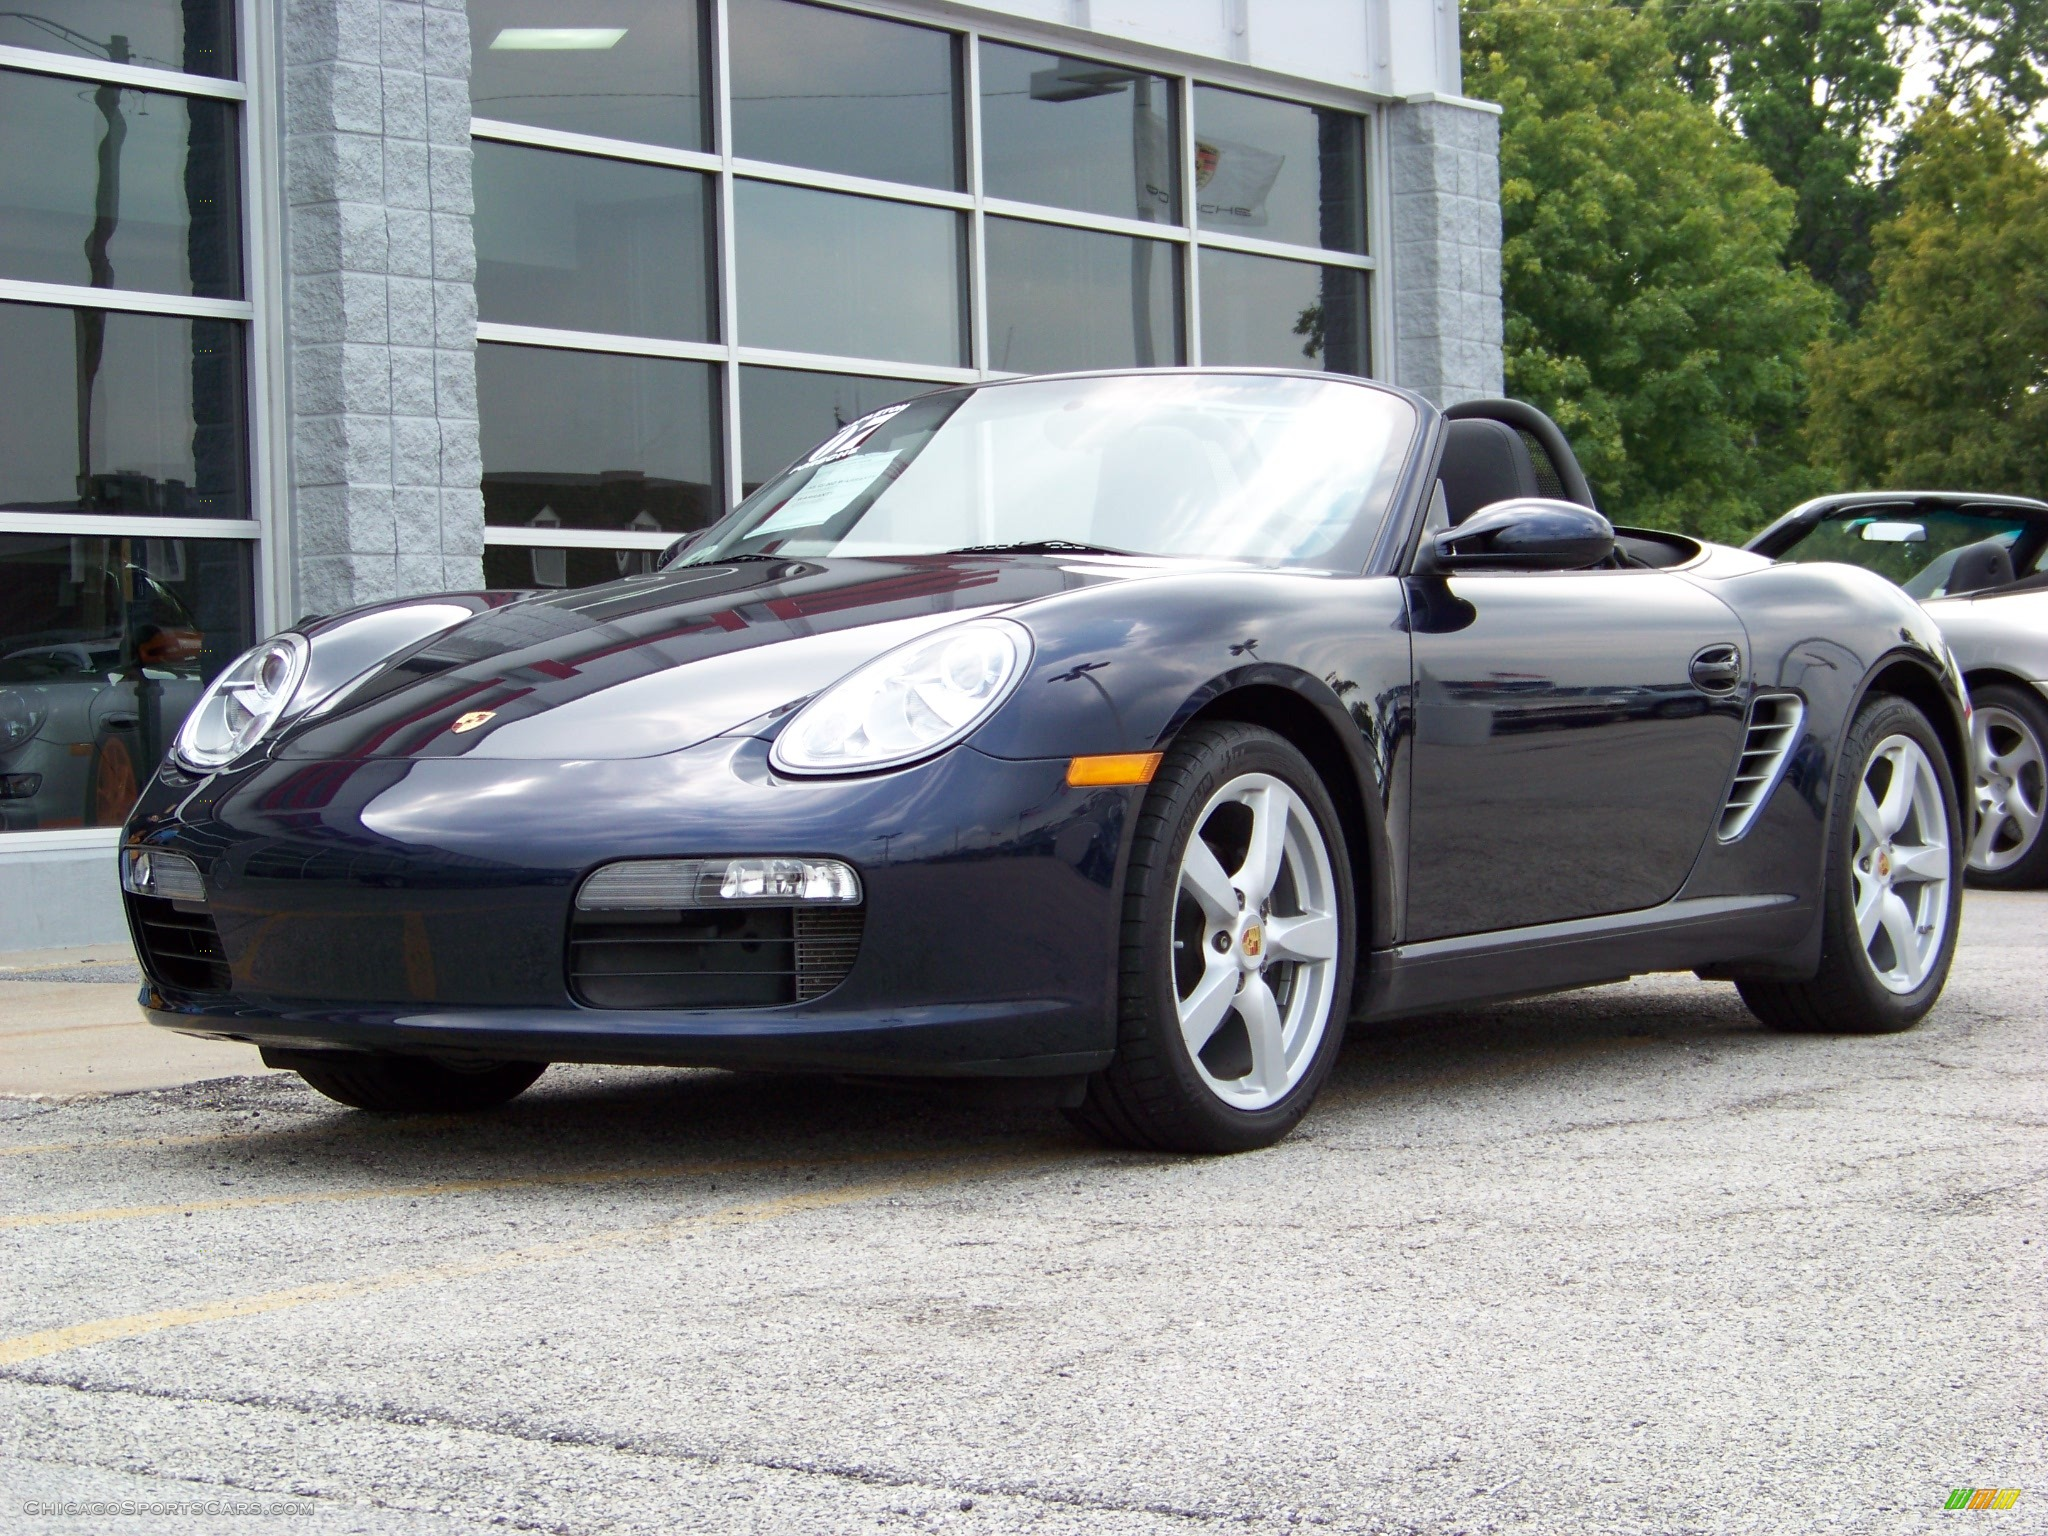 2007 porsche boxster in midnight blue metallic 712127 cars for sale. Black Bedroom Furniture Sets. Home Design Ideas